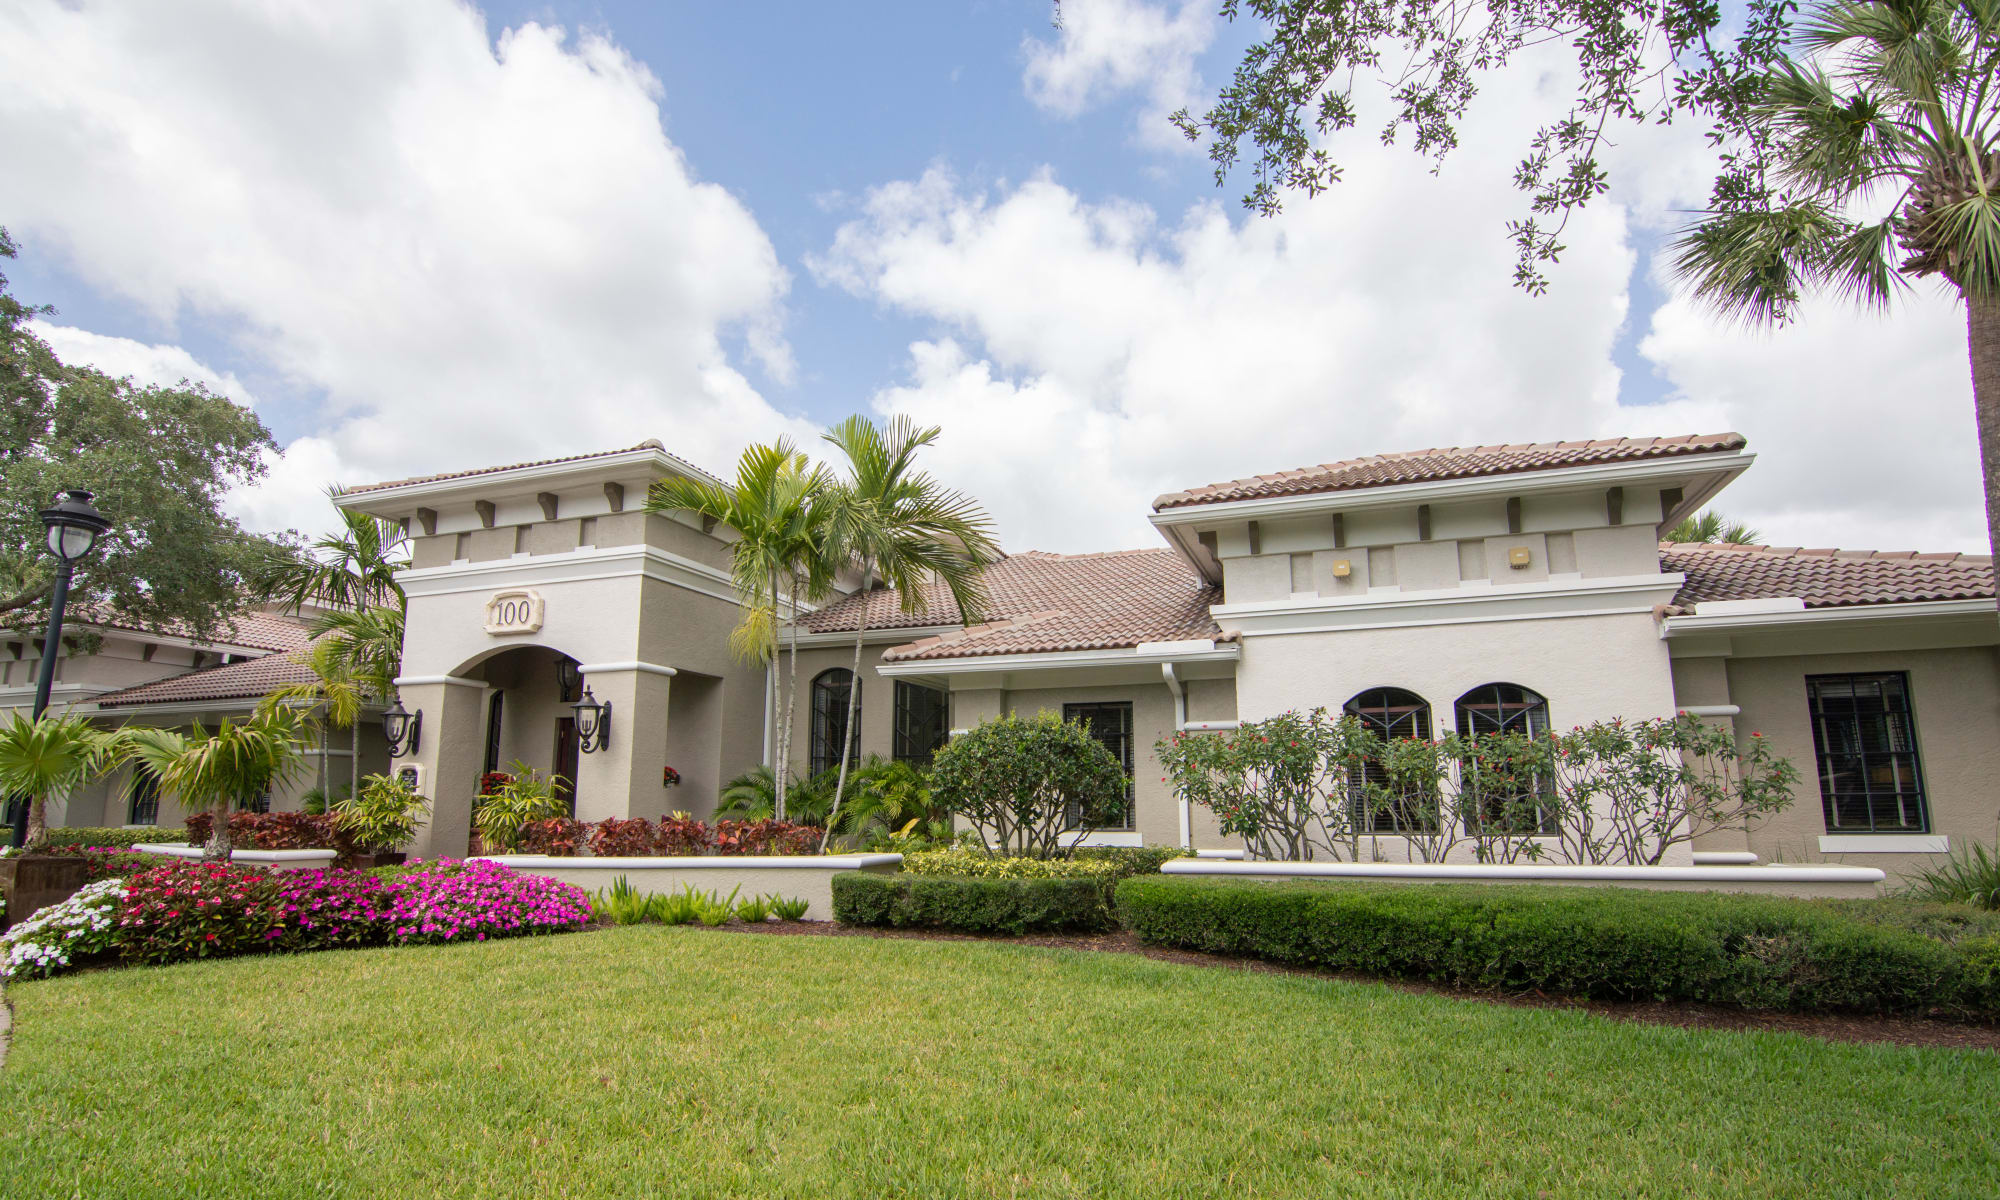 Learn more about our apartment community at San Merano at Mirasol in Palm Beach Gardens